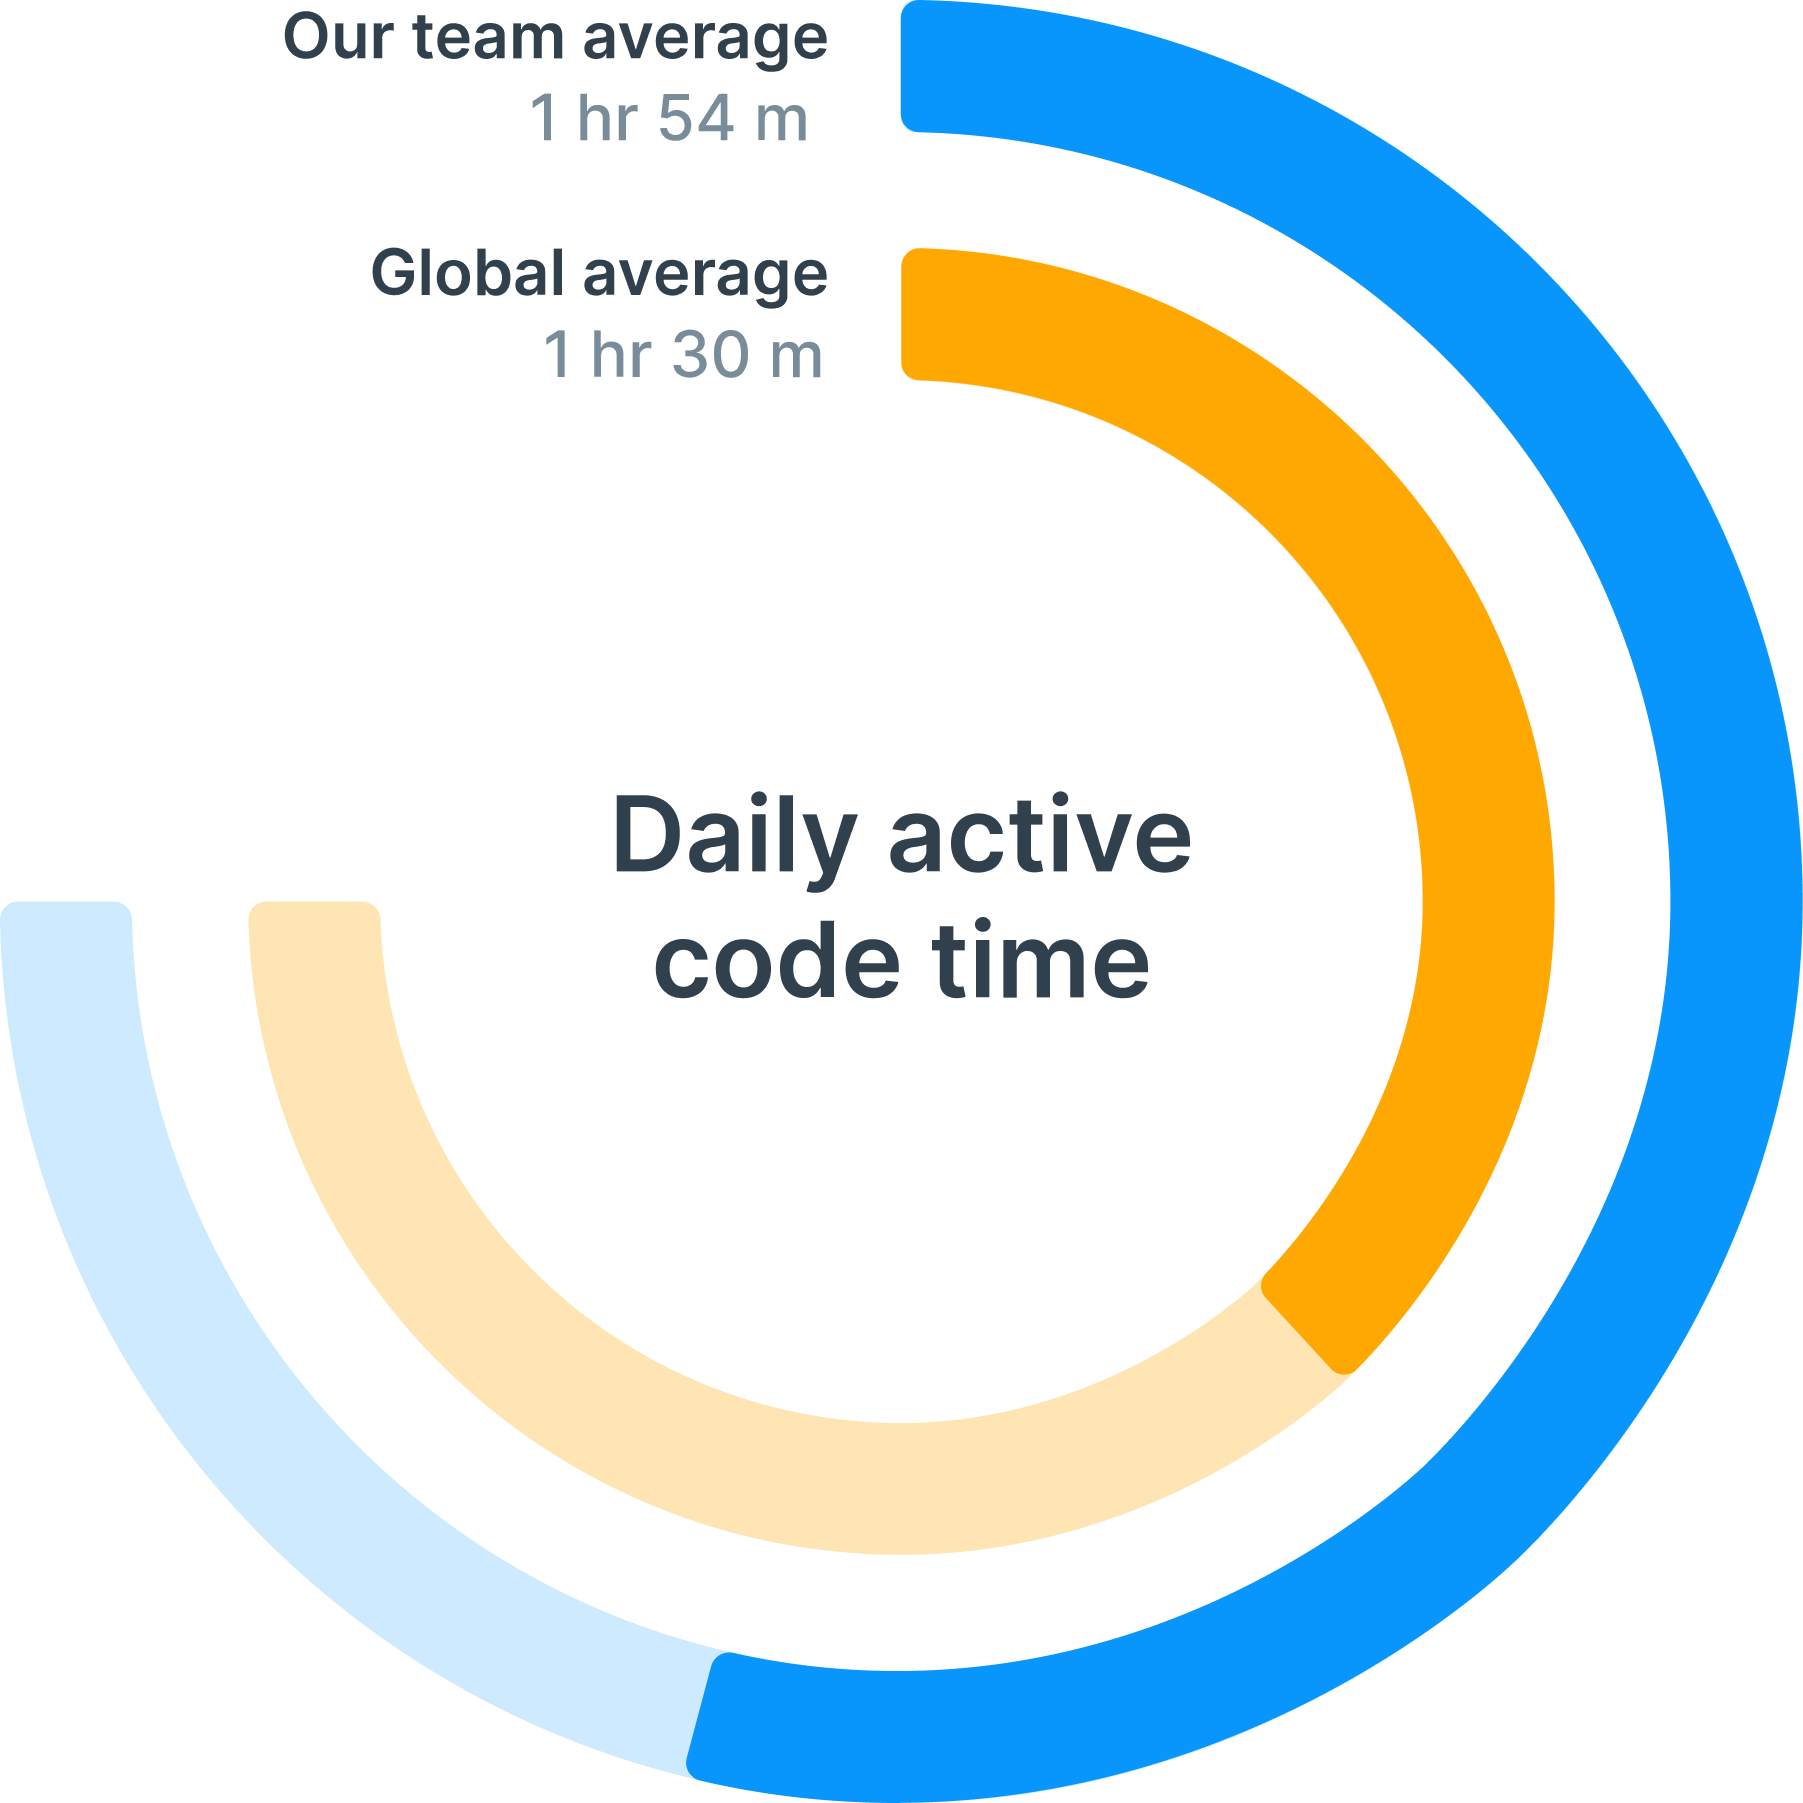 Daily active code time chart